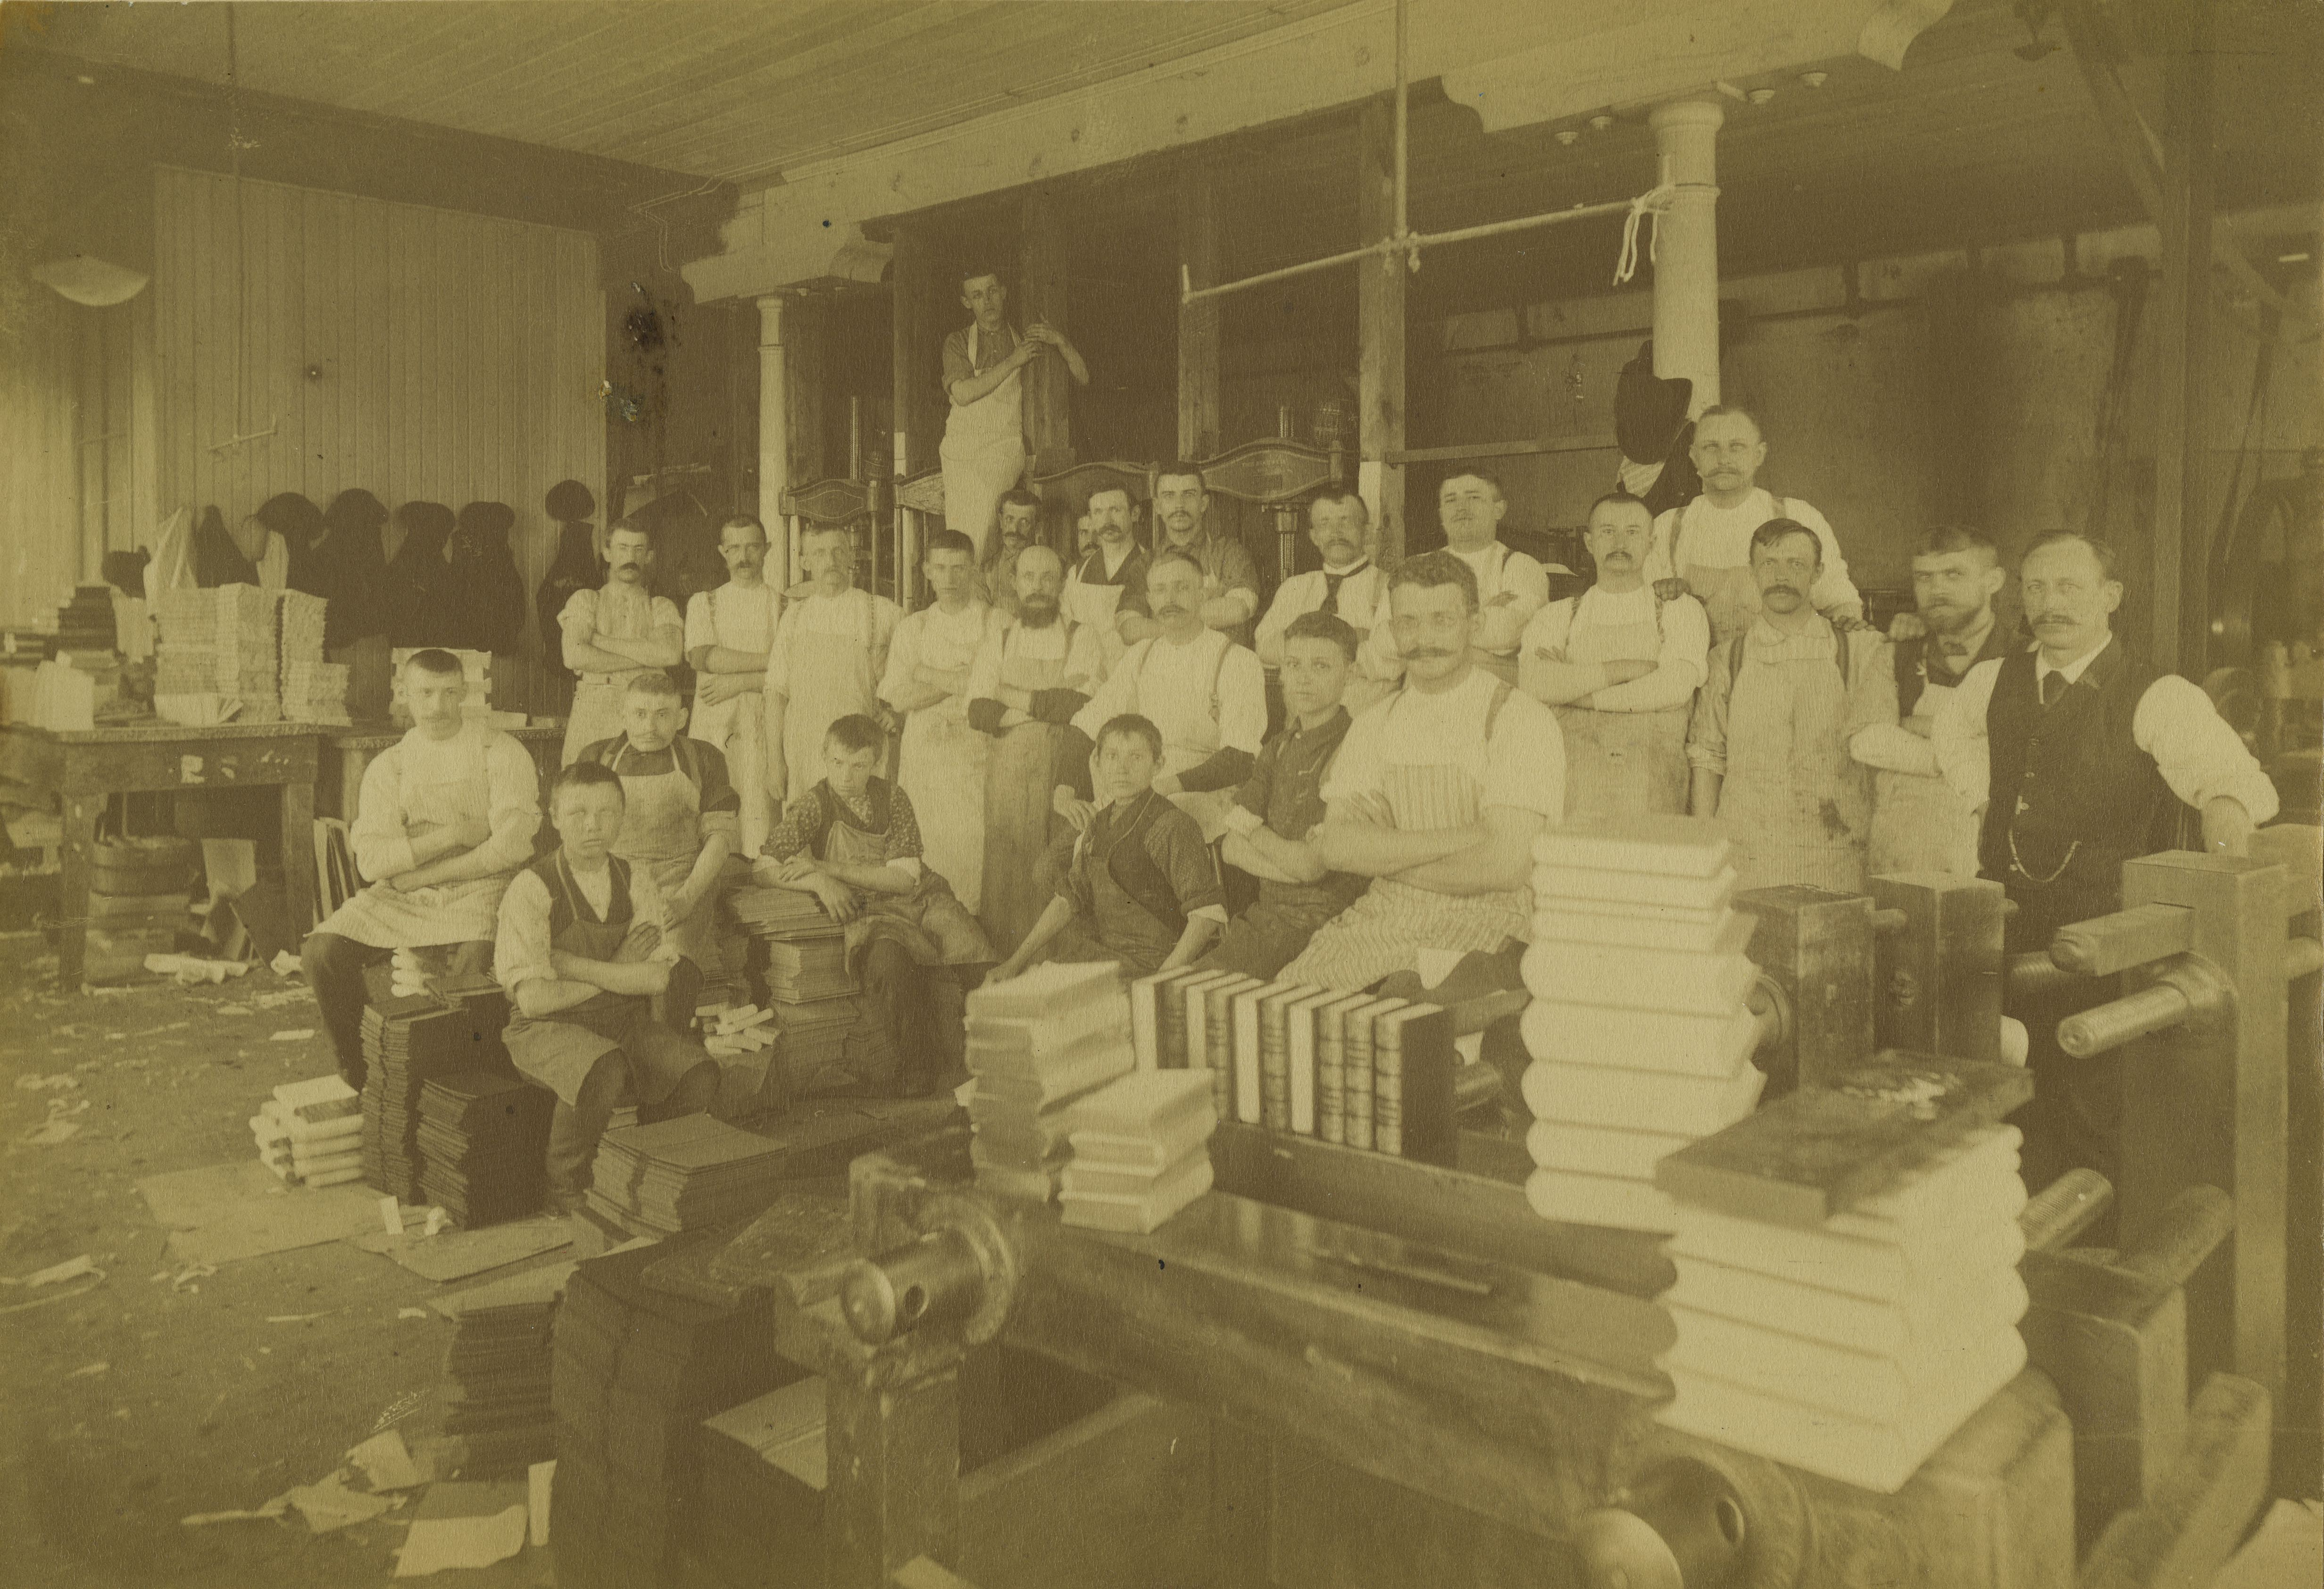 <table class=&quot;lightbox&quot;><tr><td colspan=2 class=&quot;lightbox-title&quot;>Brumder Publishing Company</td></tr><tr><td colspan=2 class=&quot;lightbox-caption&quot;>The employees of the prominent Brumder Publishing Company pose for a photograph in 1890. </td></tr><tr><td colspan=2 class=&quot;lightbox-spacer&quot;></td></tr><tr class=&quot;lightbox-detail&quot;><td class=&quot;cell-title&quot;>Source: </td><td class=&quot;cell-value&quot;>From the Historic Photo Collection of the Milwaukee Public Library. <br /><a href=&quot;http://content.mpl.org/cdm/singleitem/collection/HstoricPho/id/2417/rec/1&quot; target=&quot;_blank&quot;>Milwaukee Public Library</a></td></tr><tr class=&quot;filler-row&quot;><td colspan=2>&nbsp;</td></tr></table>